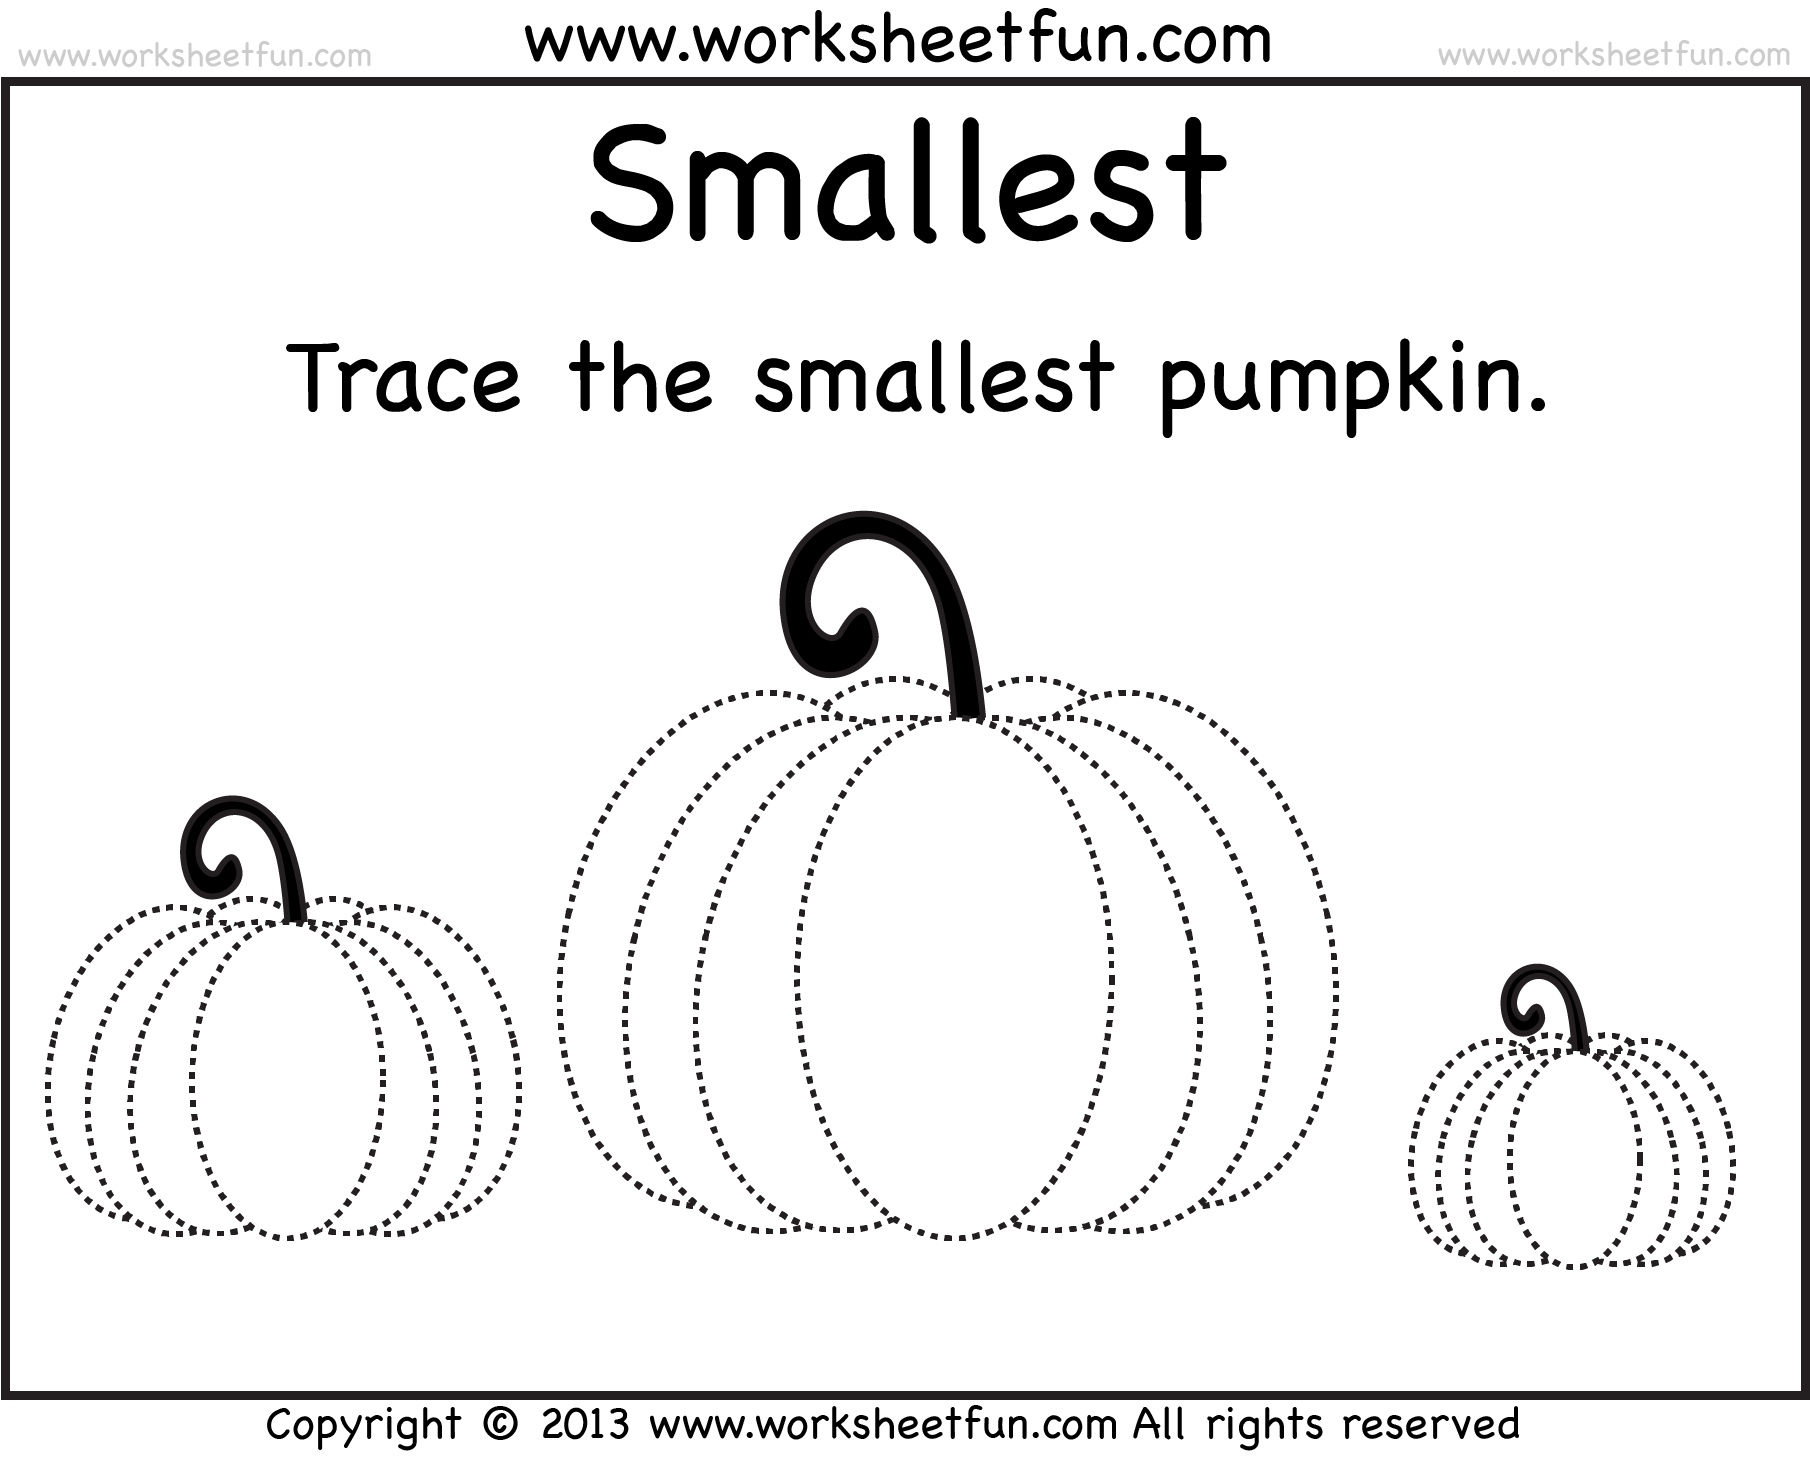 Pumpkin Tracing 2 Worksheets Free Printable Worksheets